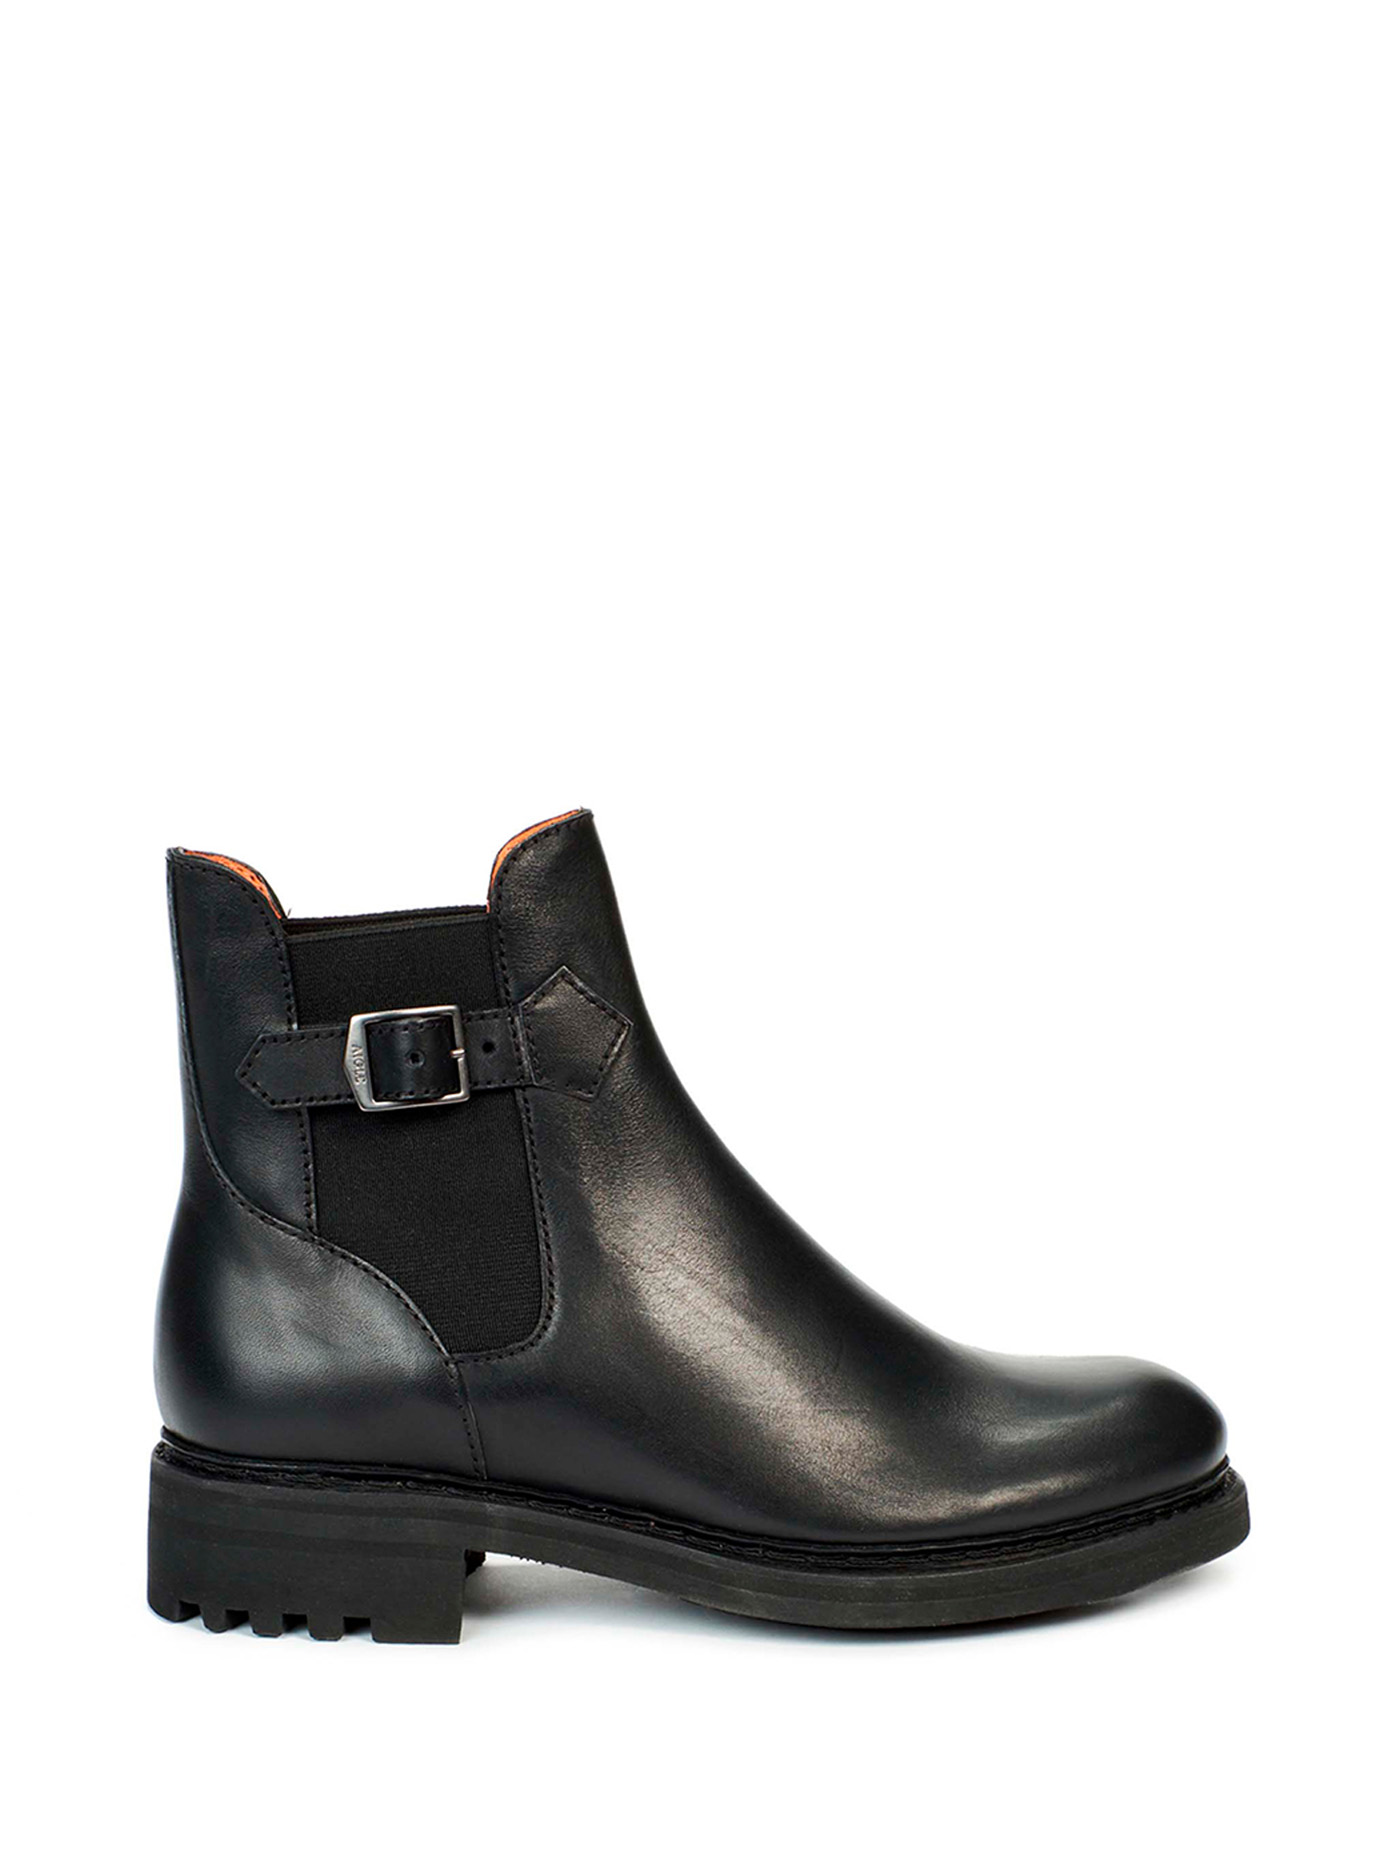 CANTY CHELSEA| Women's leather ankle boots Black